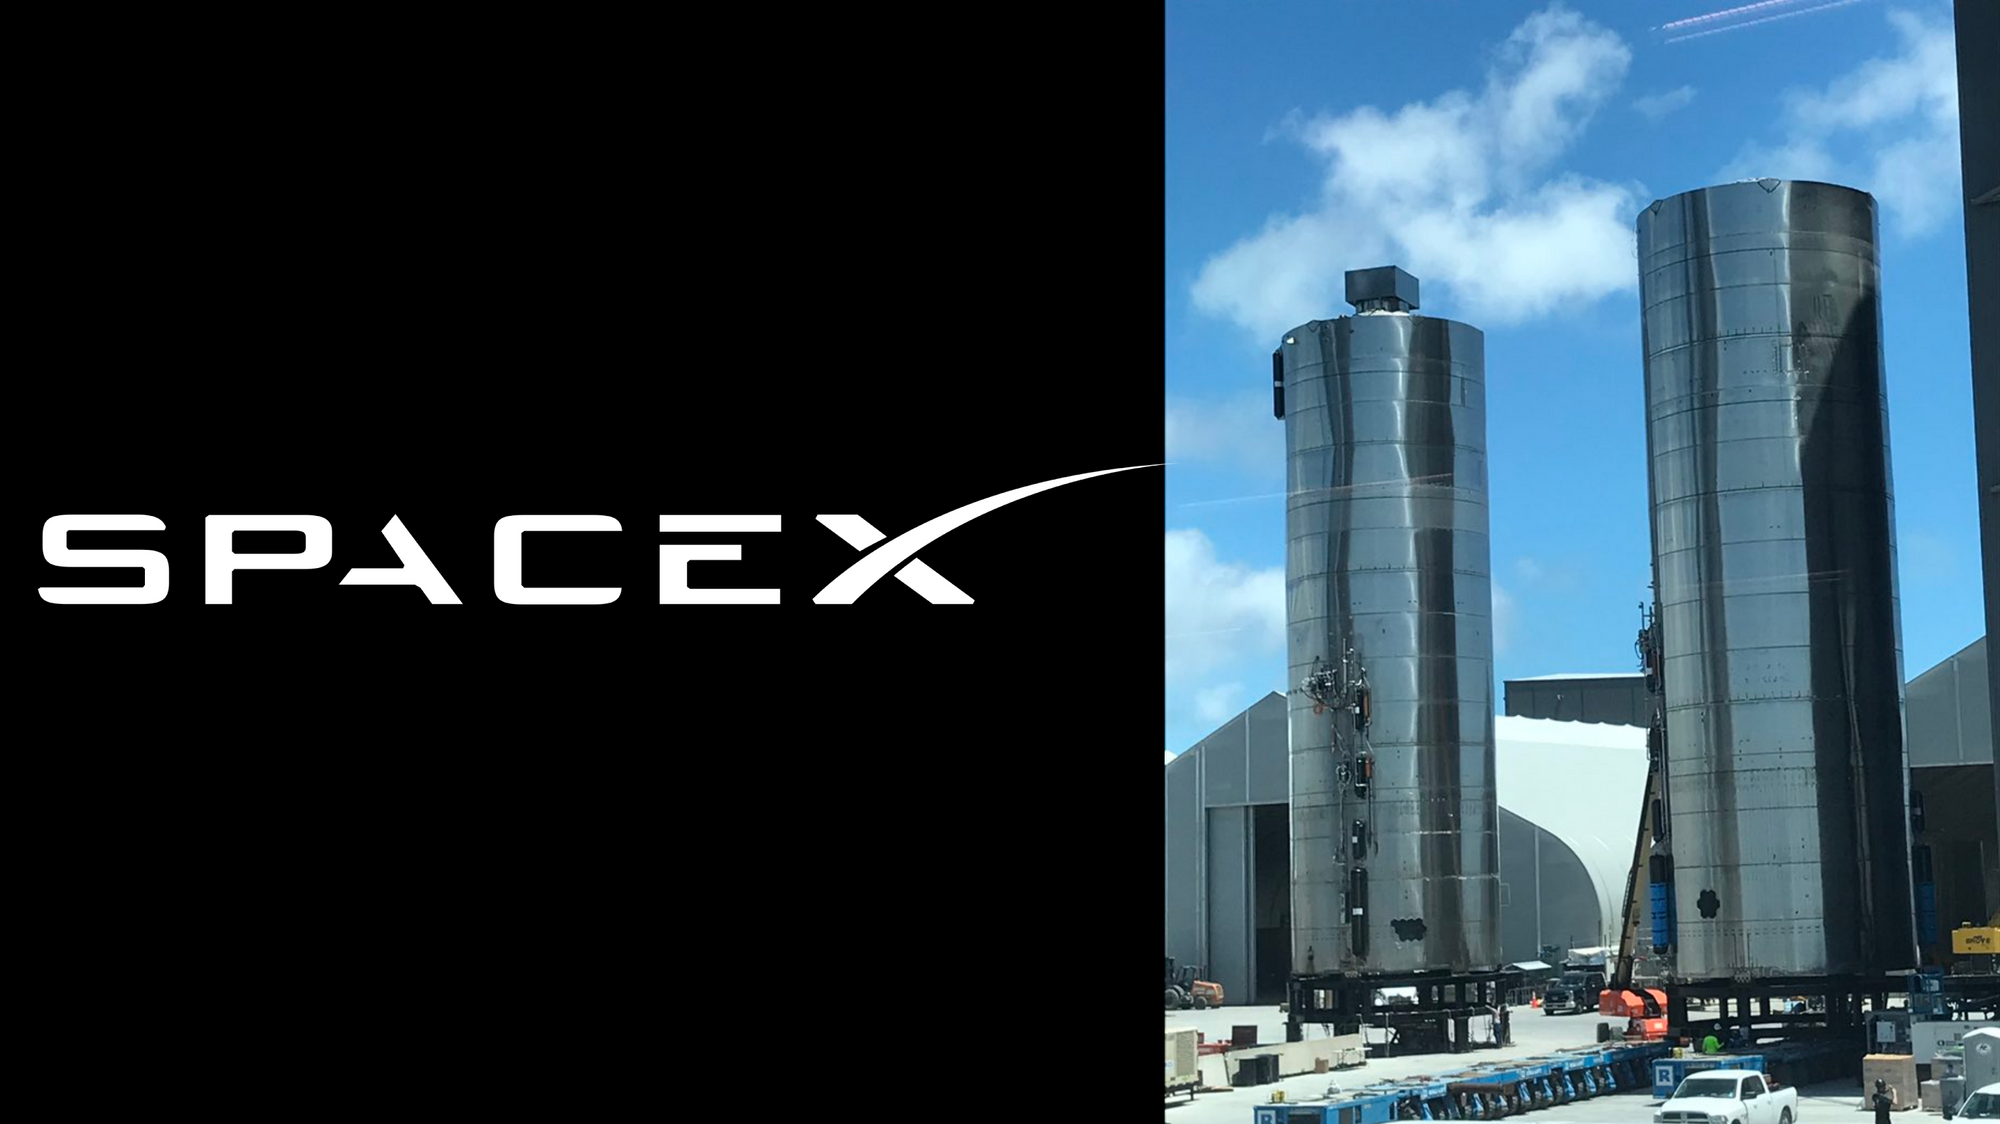 SpaceX transports next Starship to the launch pad to prepare it for flight